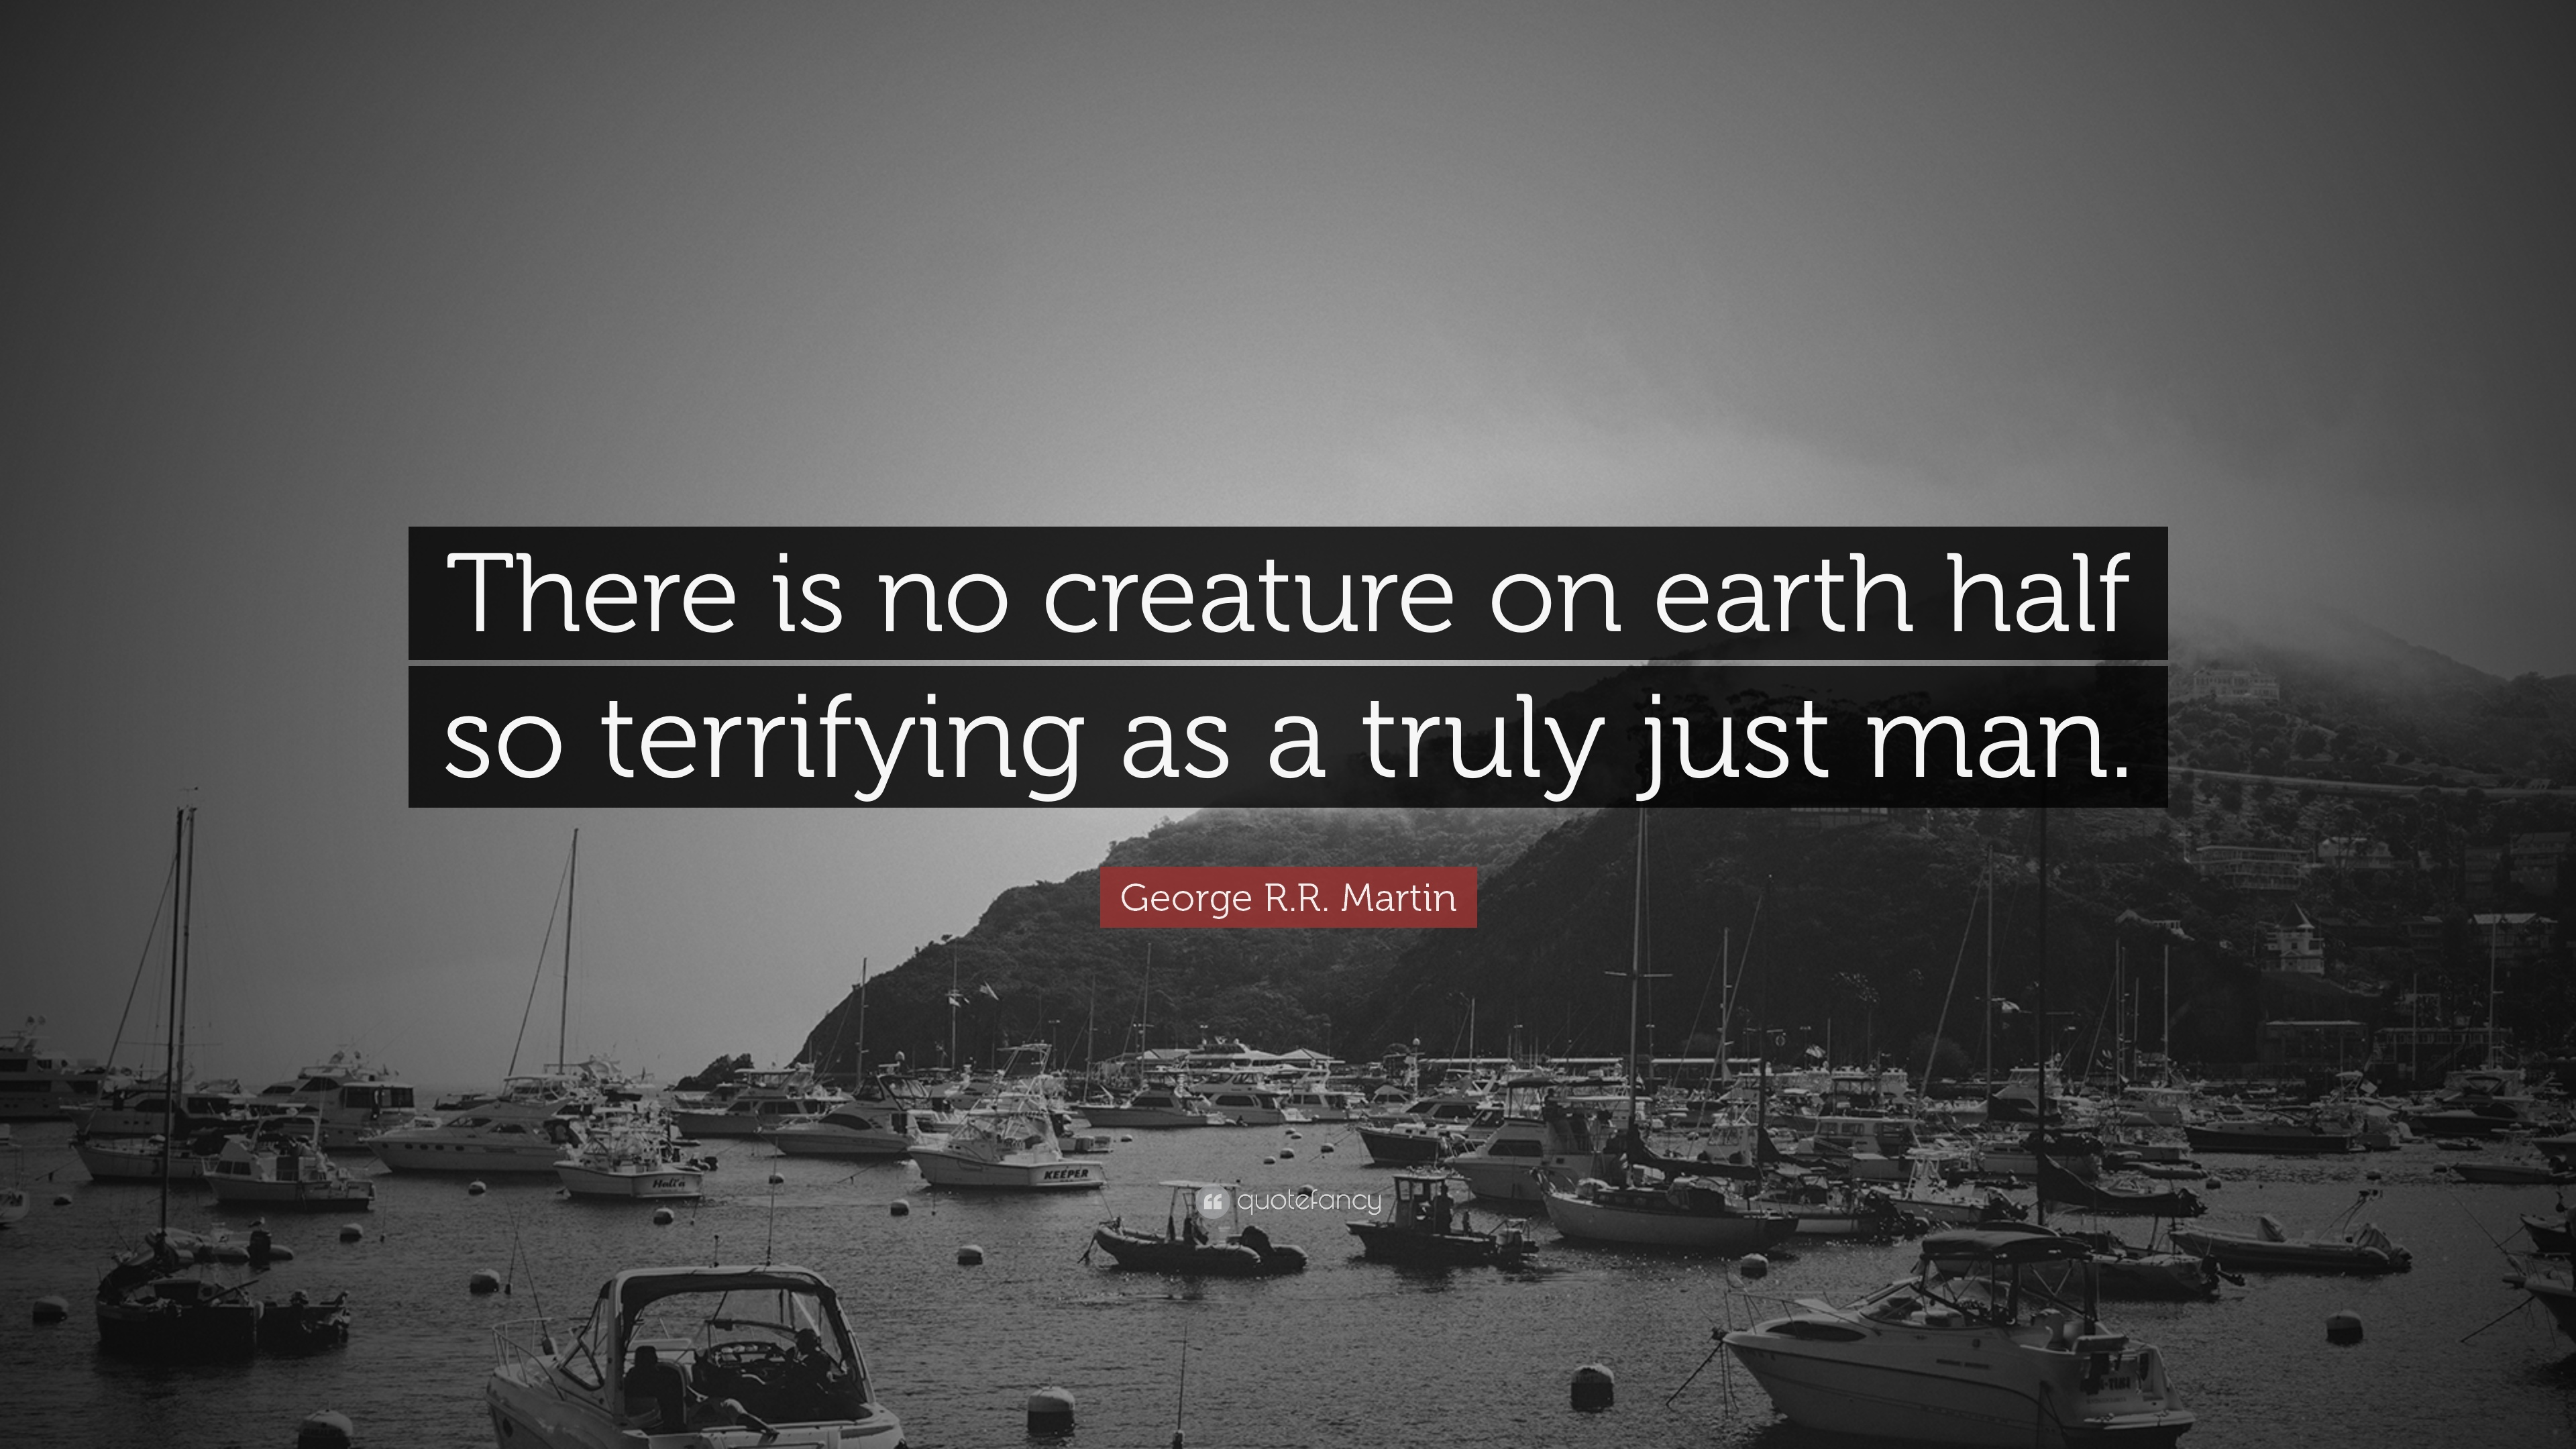 George Rr Martin Quote There Is No Creature On Earth Half So